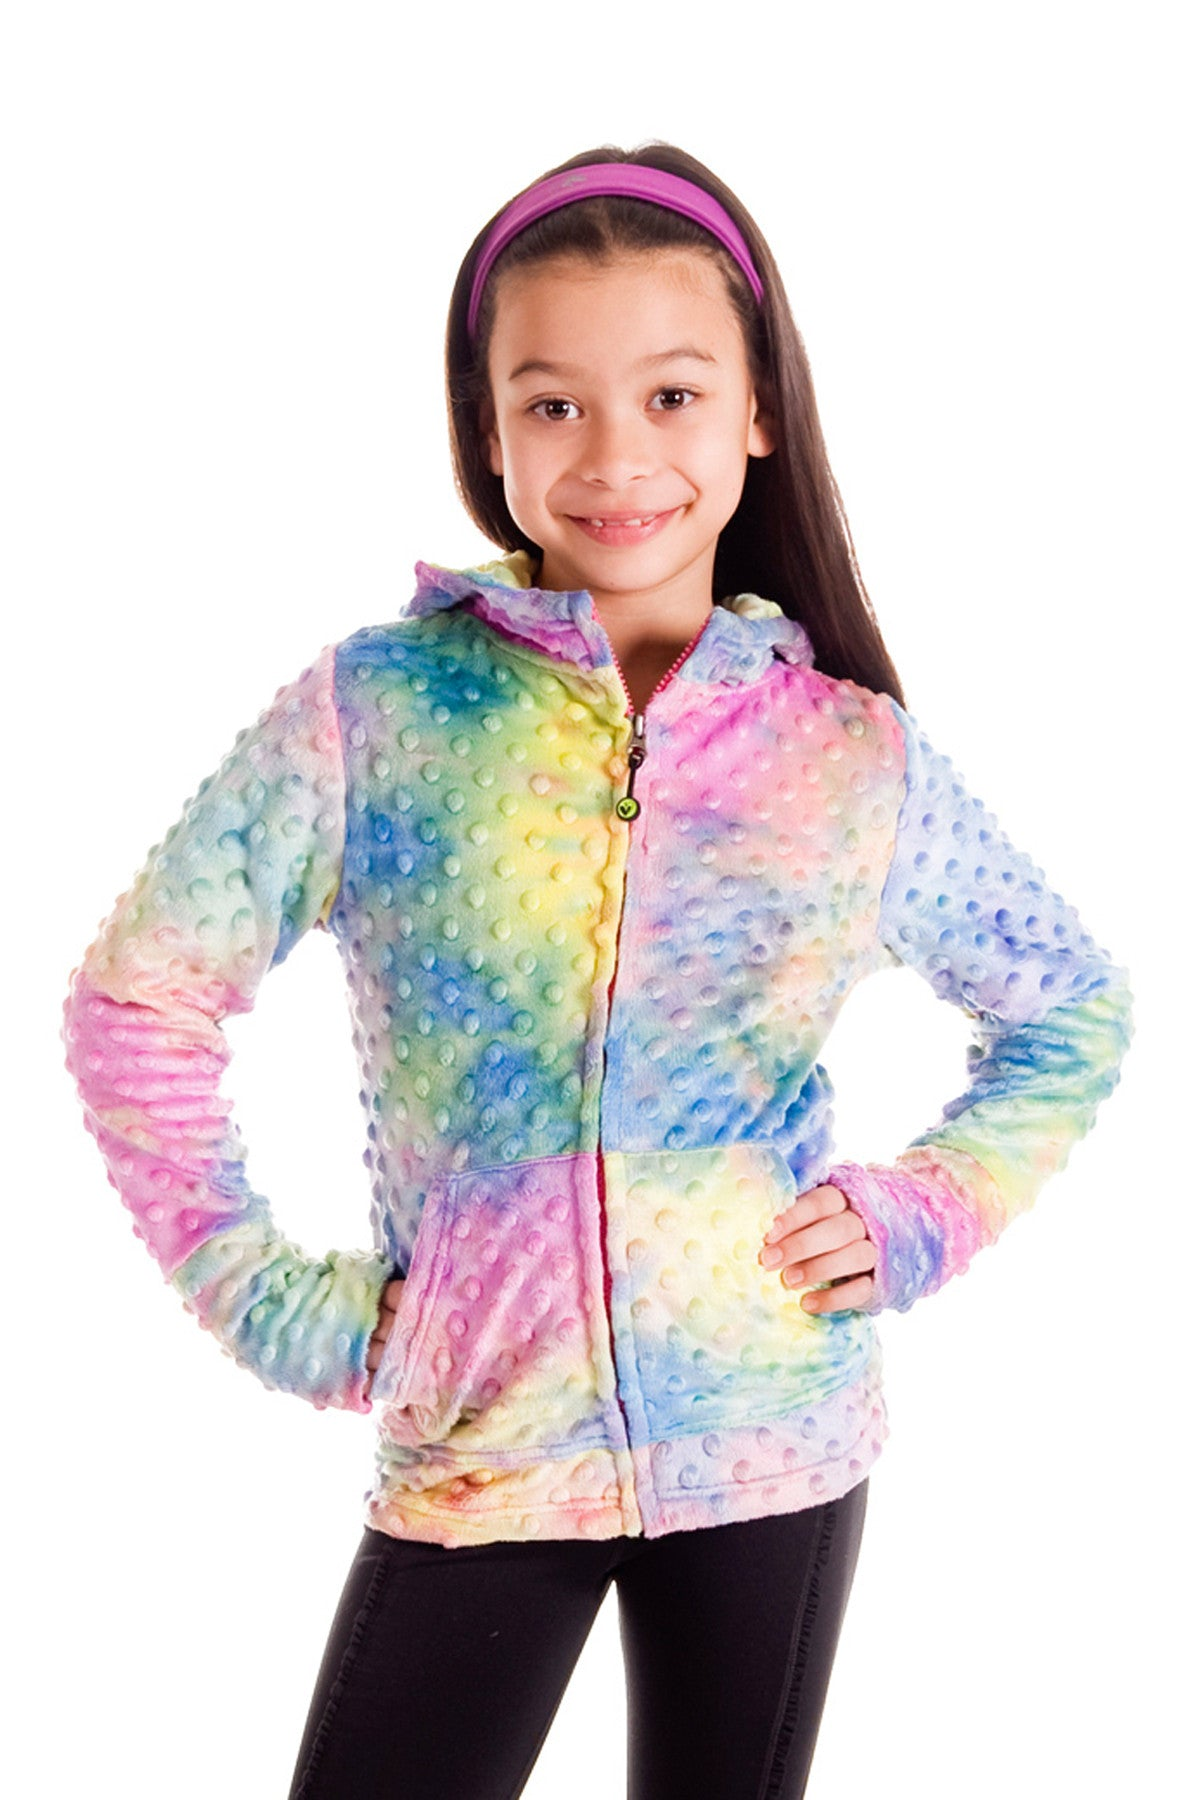 Pre Teens Swim Suit Bottom On Only Pictures: Preteen Girl's Fashion - Rainbow